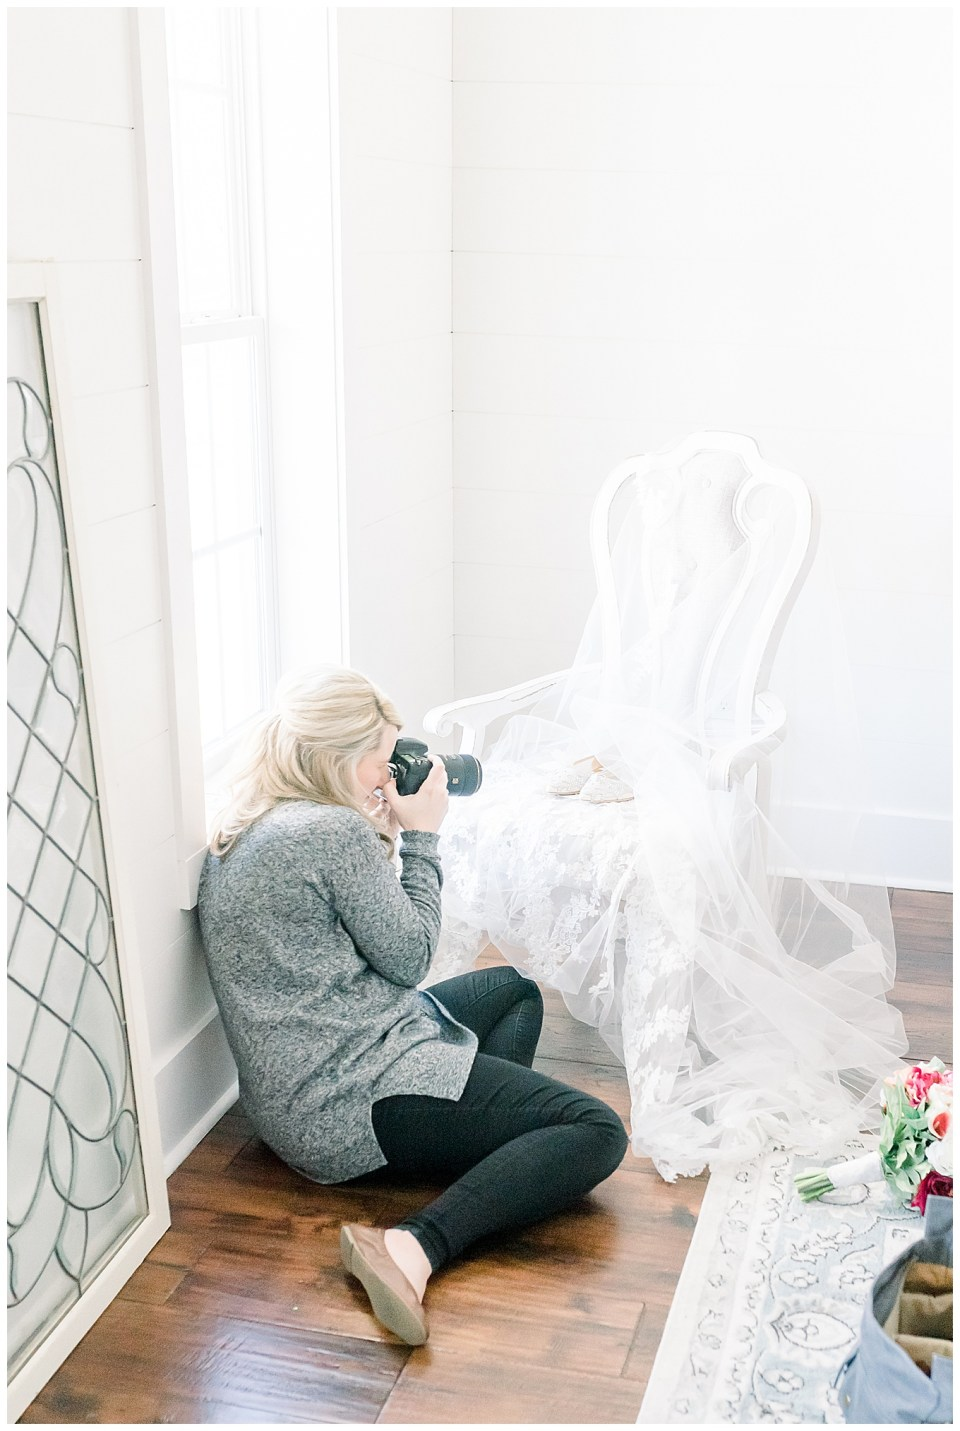 brittany bruce shooting bridal details on a wedding day